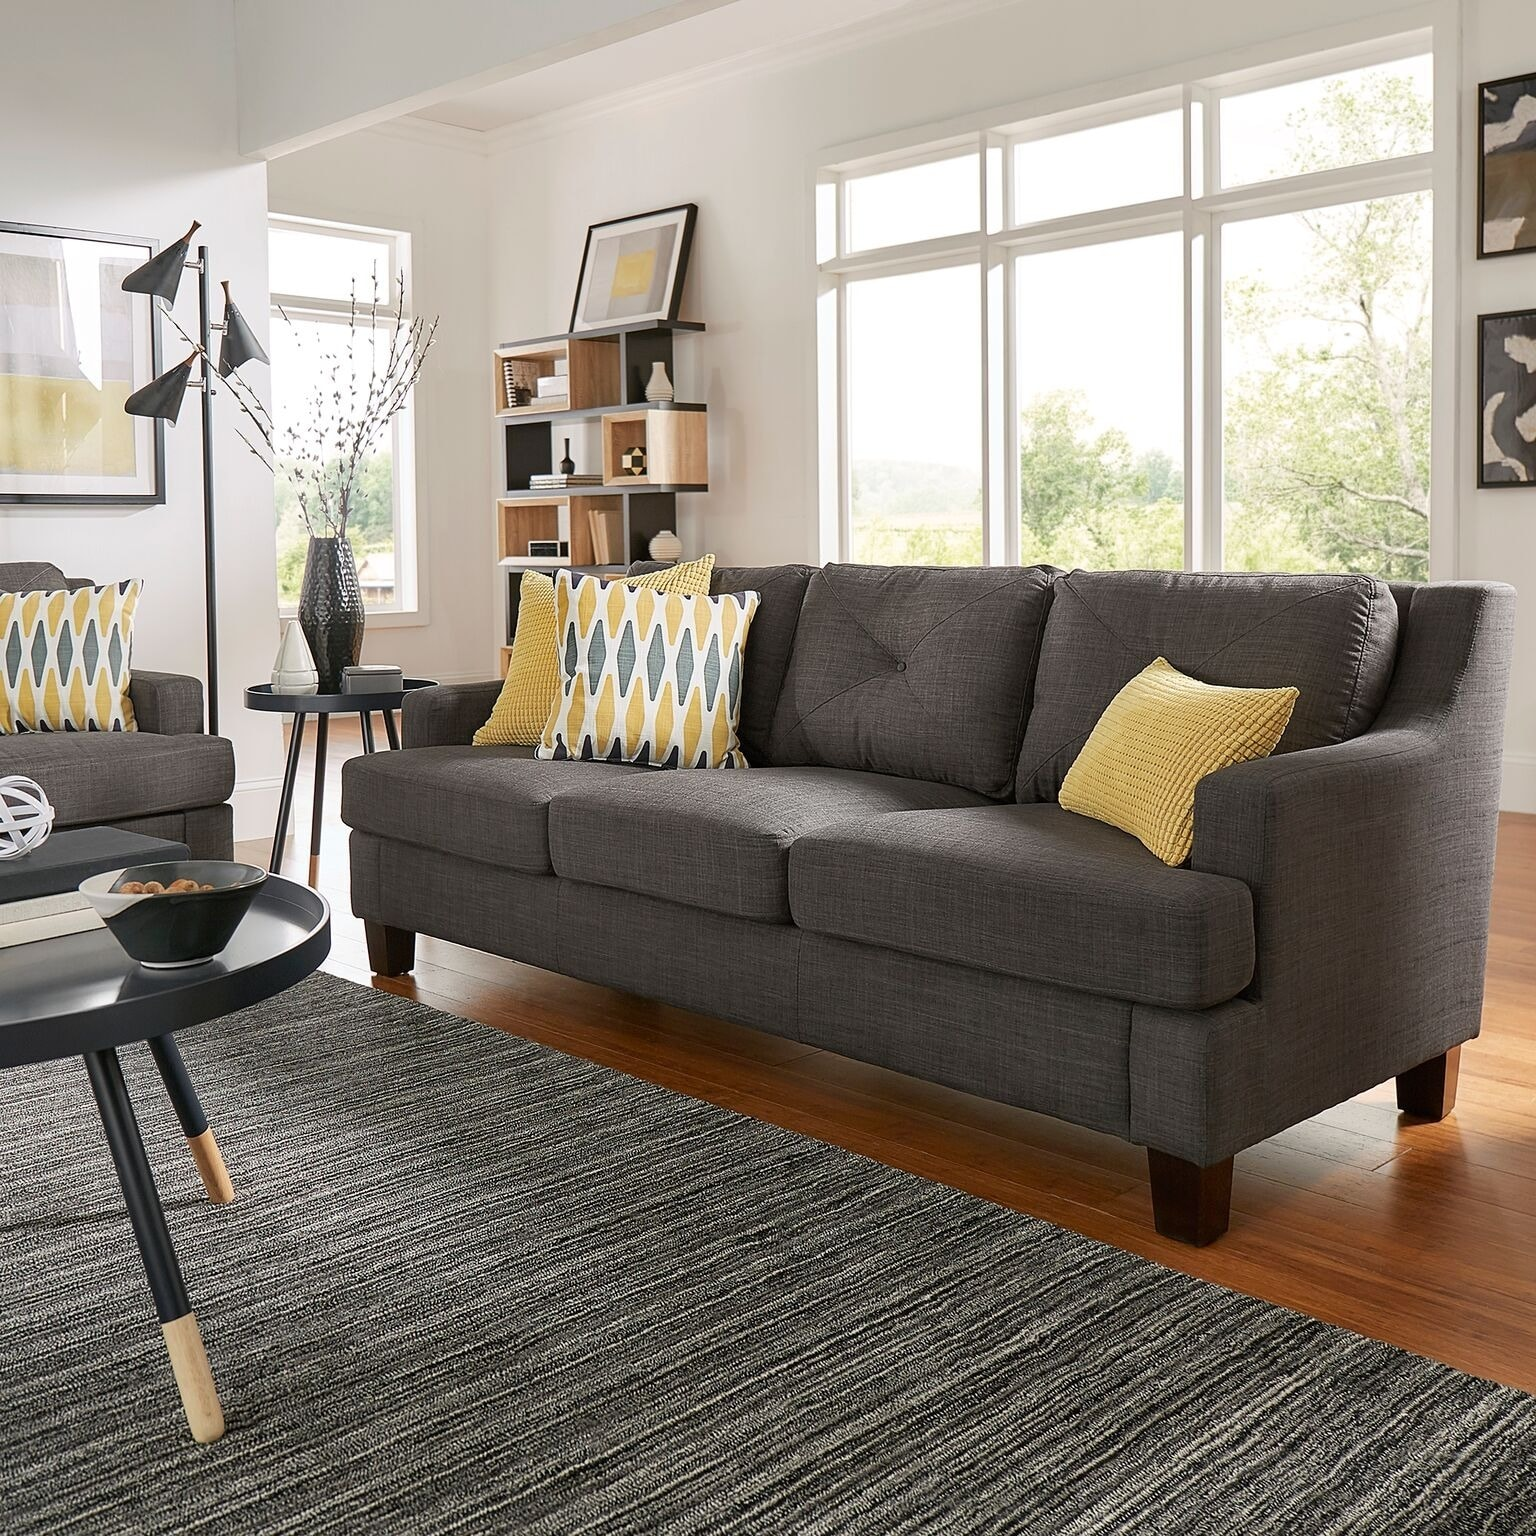 Excellent Grey Sofas & Couches For Less | Overstock LG22